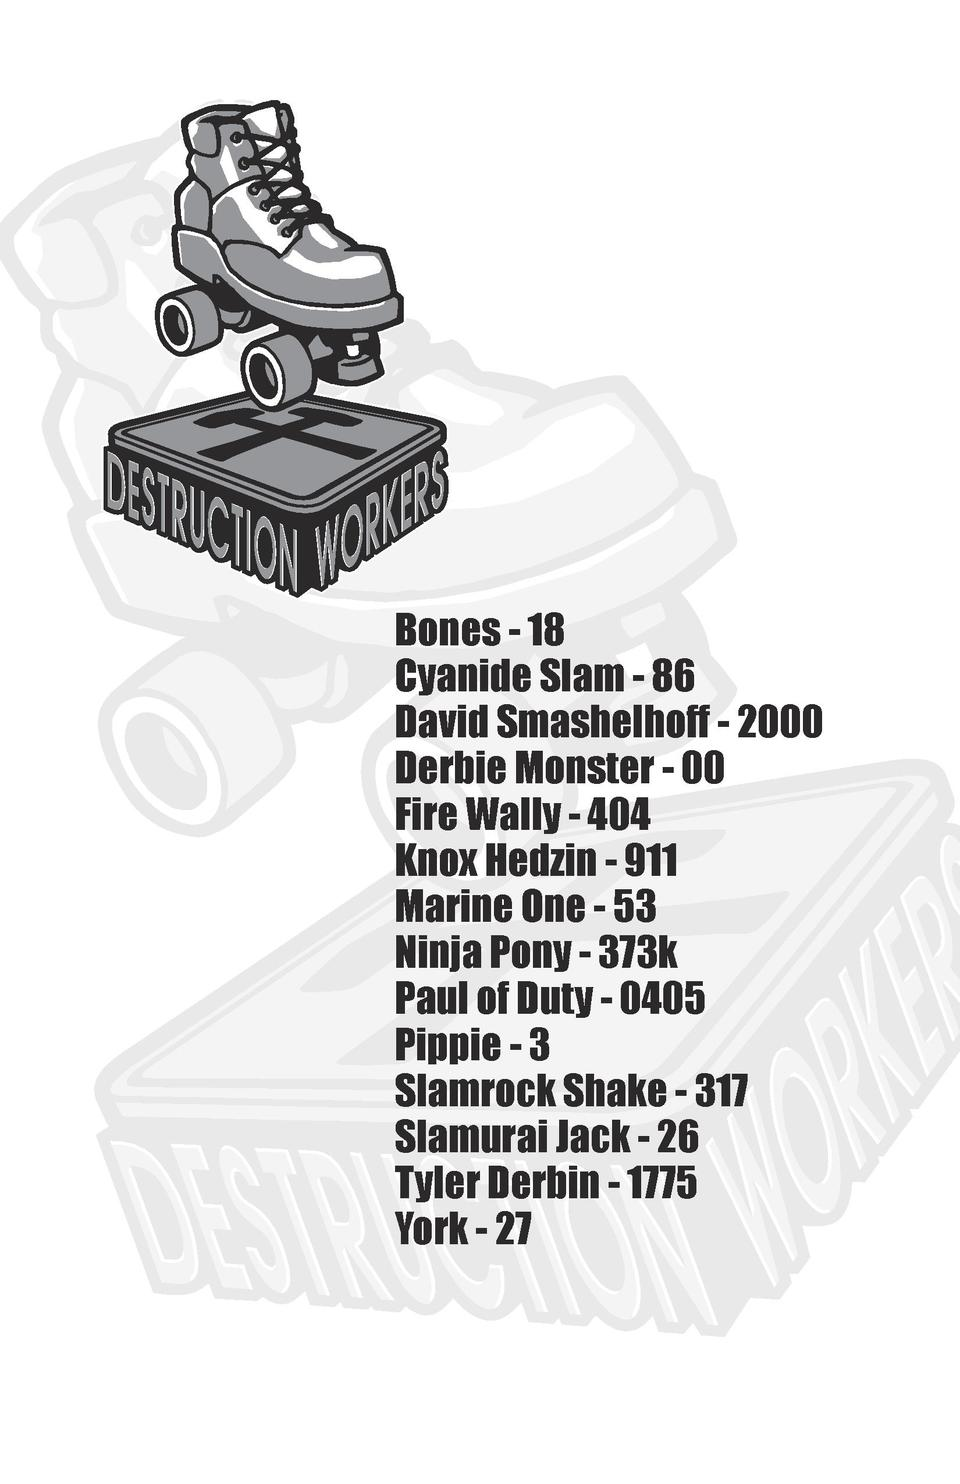 Bones - 18 Cyanide Slam - 86 David Smashelhoff - 2000 Derbie Monster - 00 Fire Wally - 404 Knox Hedzin - 911 Marine One - ...